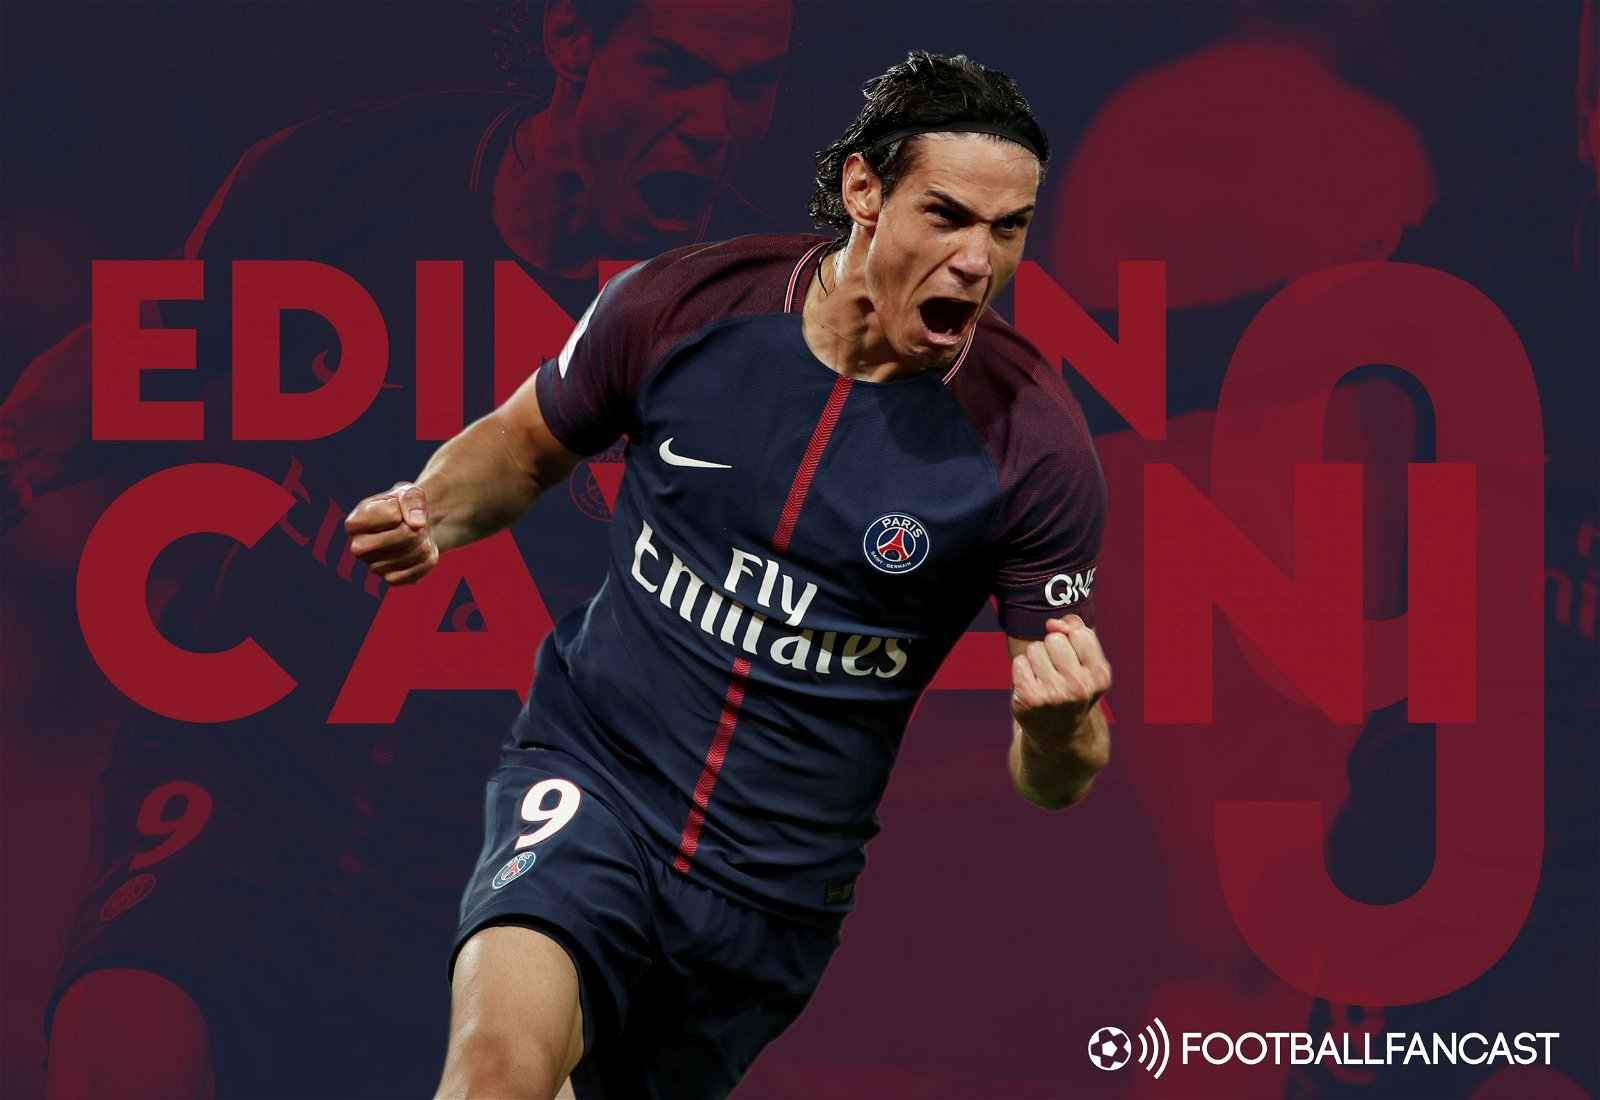 Player Zone: Edinson Cavani's unlikely similarity to Mohamed Salah